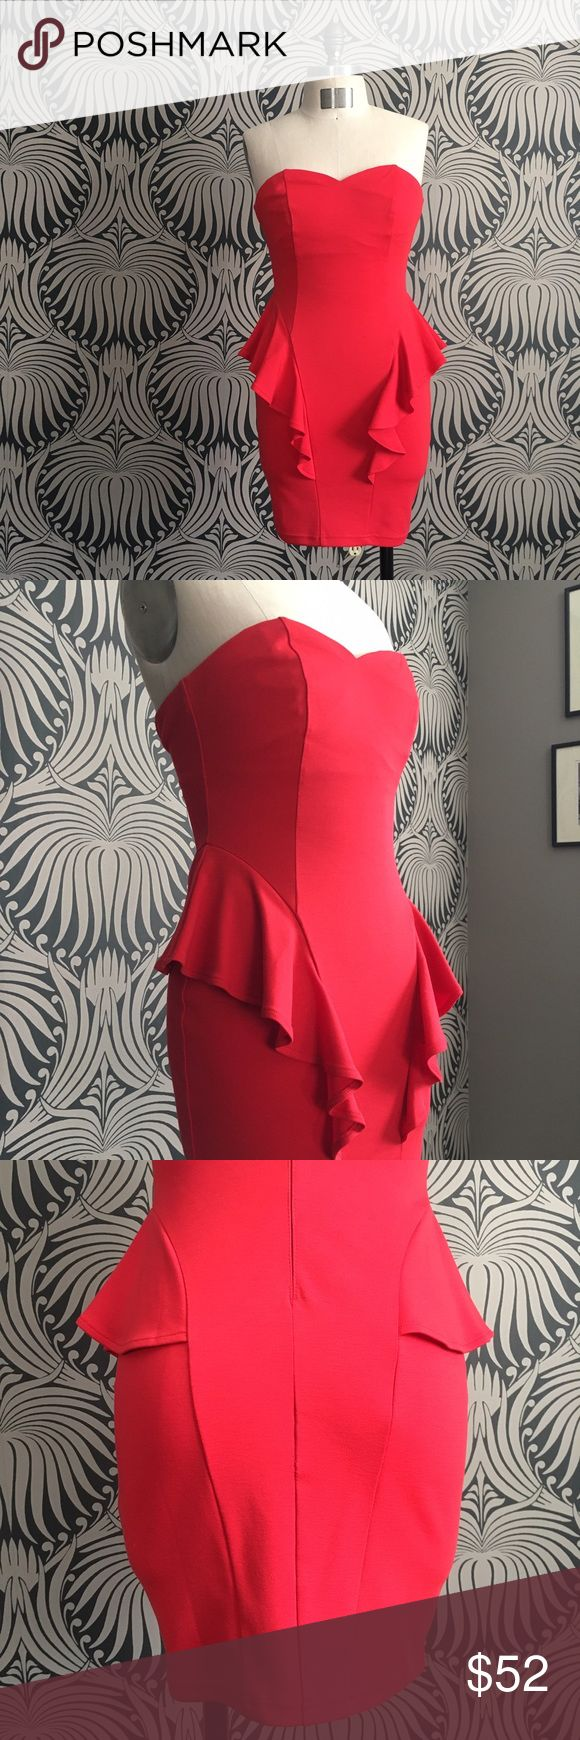 ASOS Red Dress Sexy bombshell red dress by Lipsy from ASOS. US size 6, which is a UK 10. Comes with an optional set of straps which you can attach and adjust to your liking. New and in excellent condition. ASOS Dresses Mini